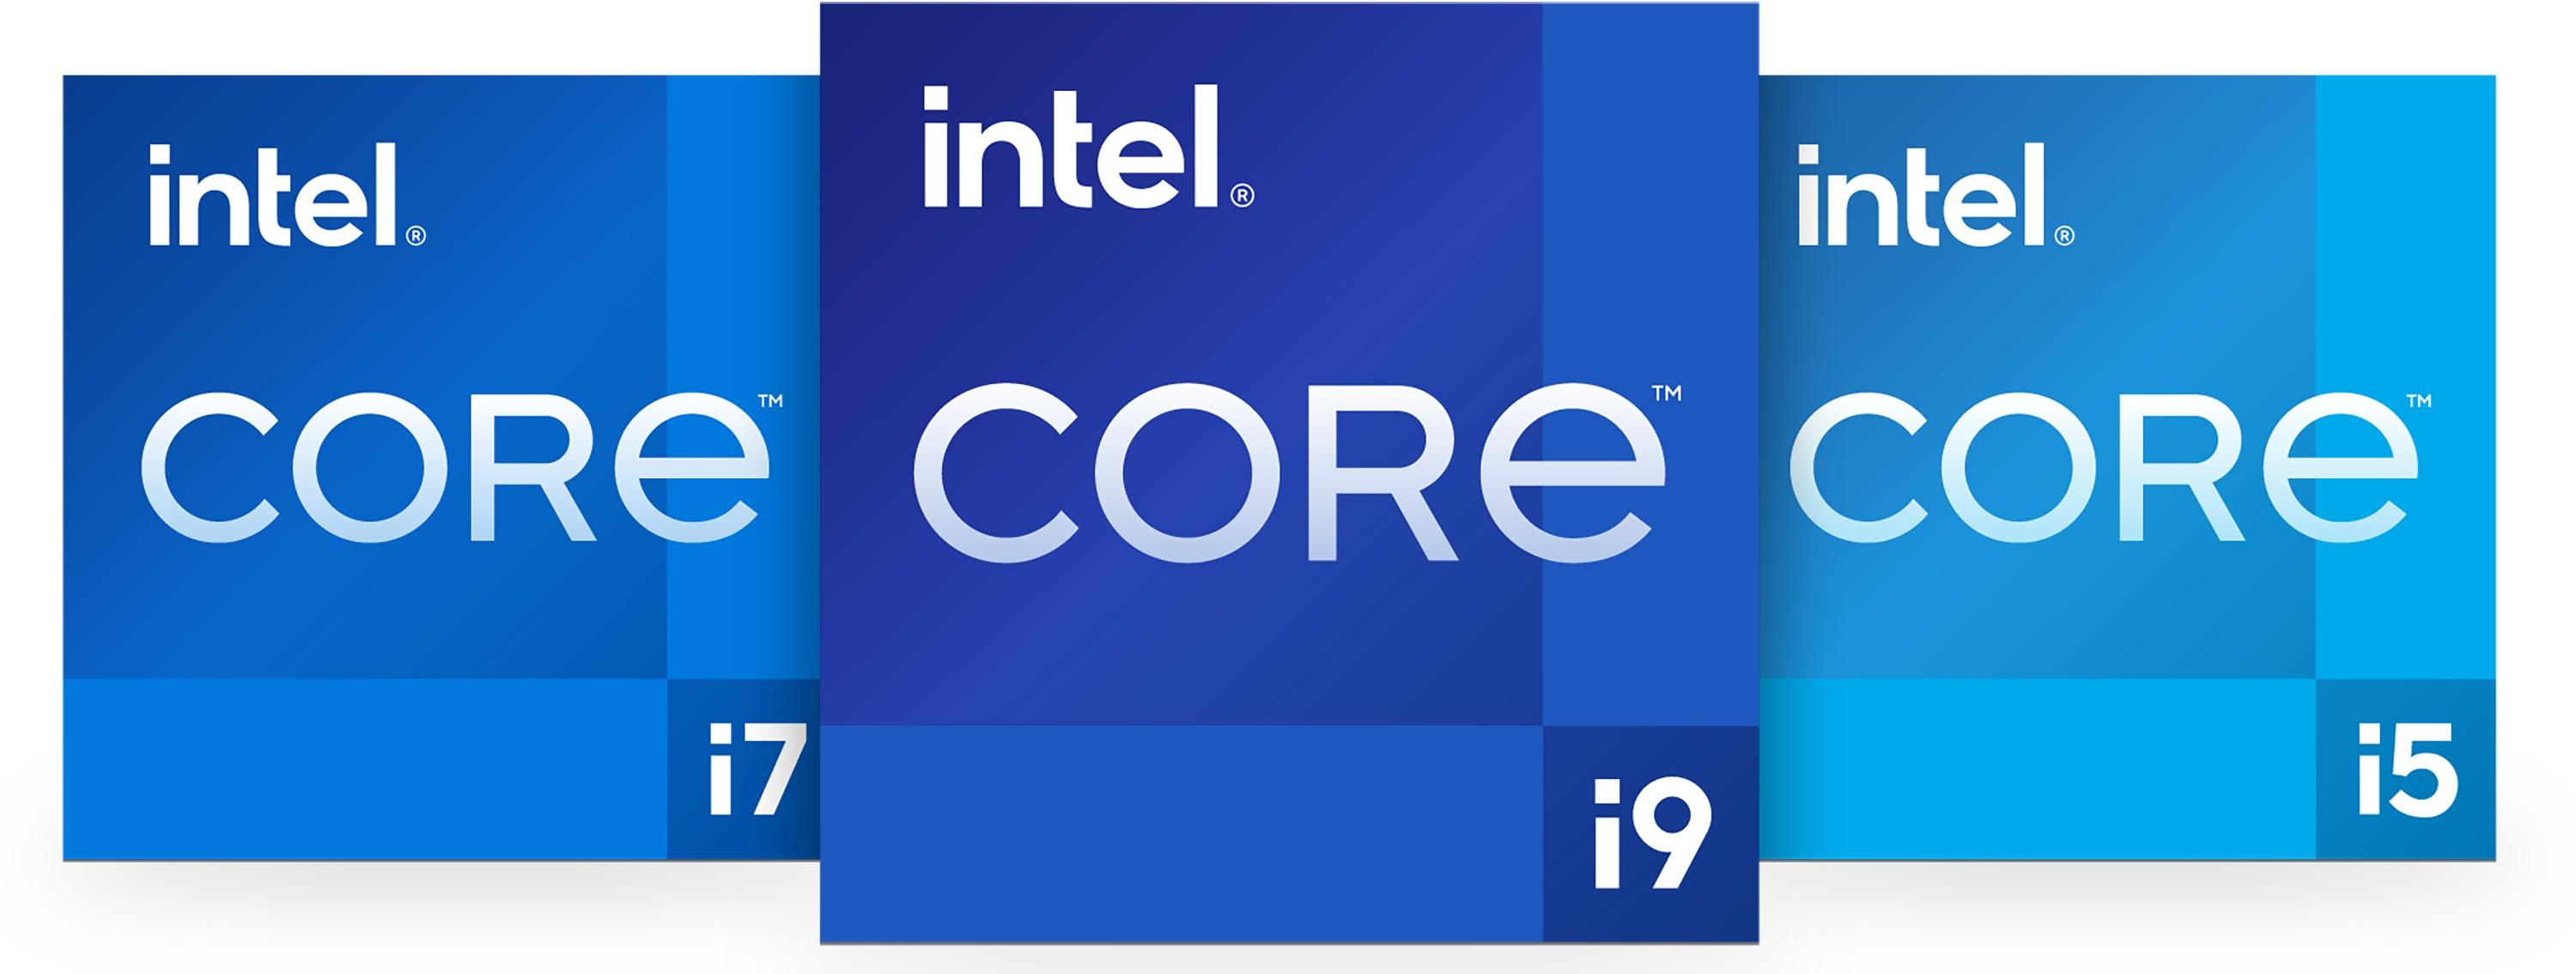 The new H-series processors will feature in a variety of systems to meet the needs of consumers across all price points. (Image source: Intel)